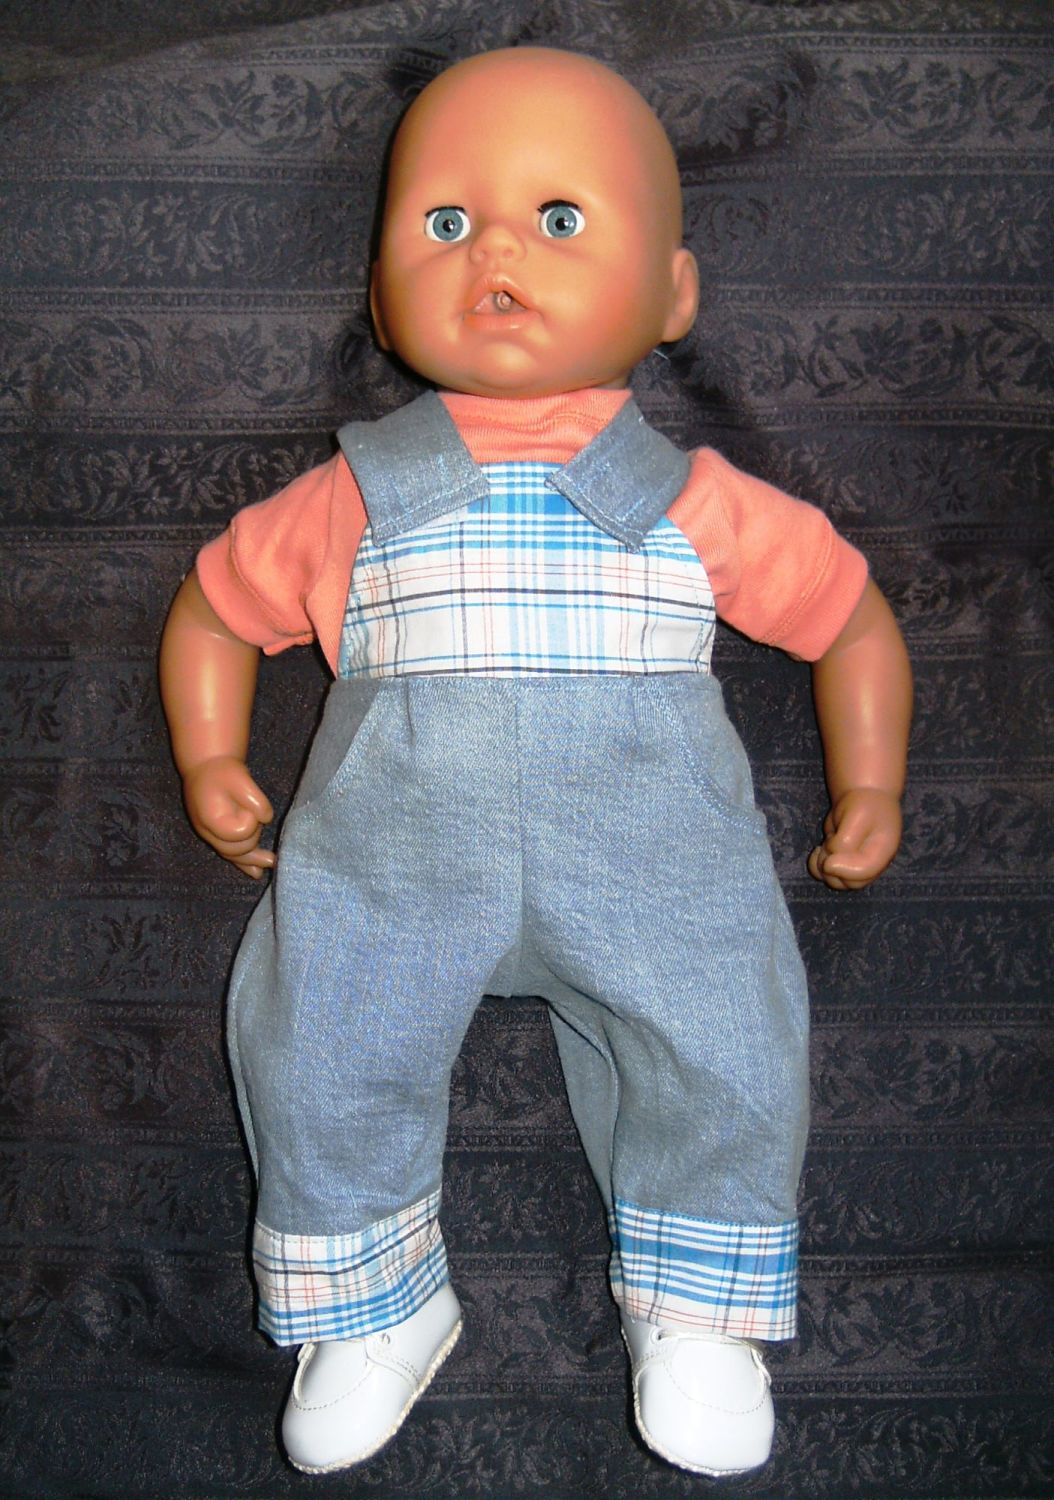 Doll's dungaree set made for the 18 inch high George doll